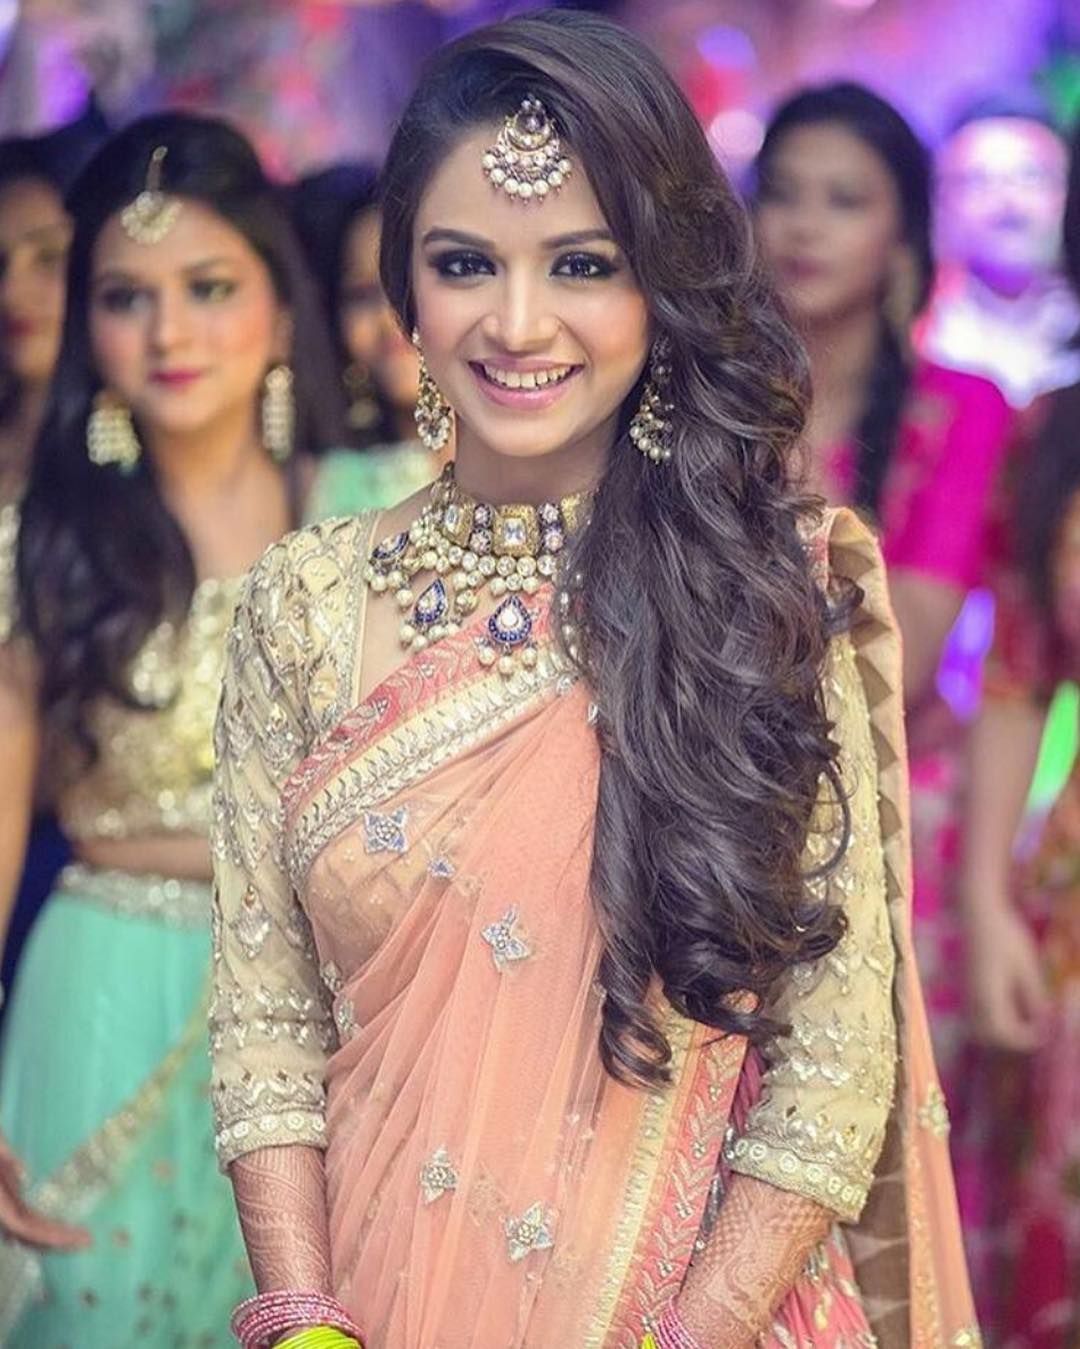 pin by afresham mushtaq on rishu in 2019 | indian wedding